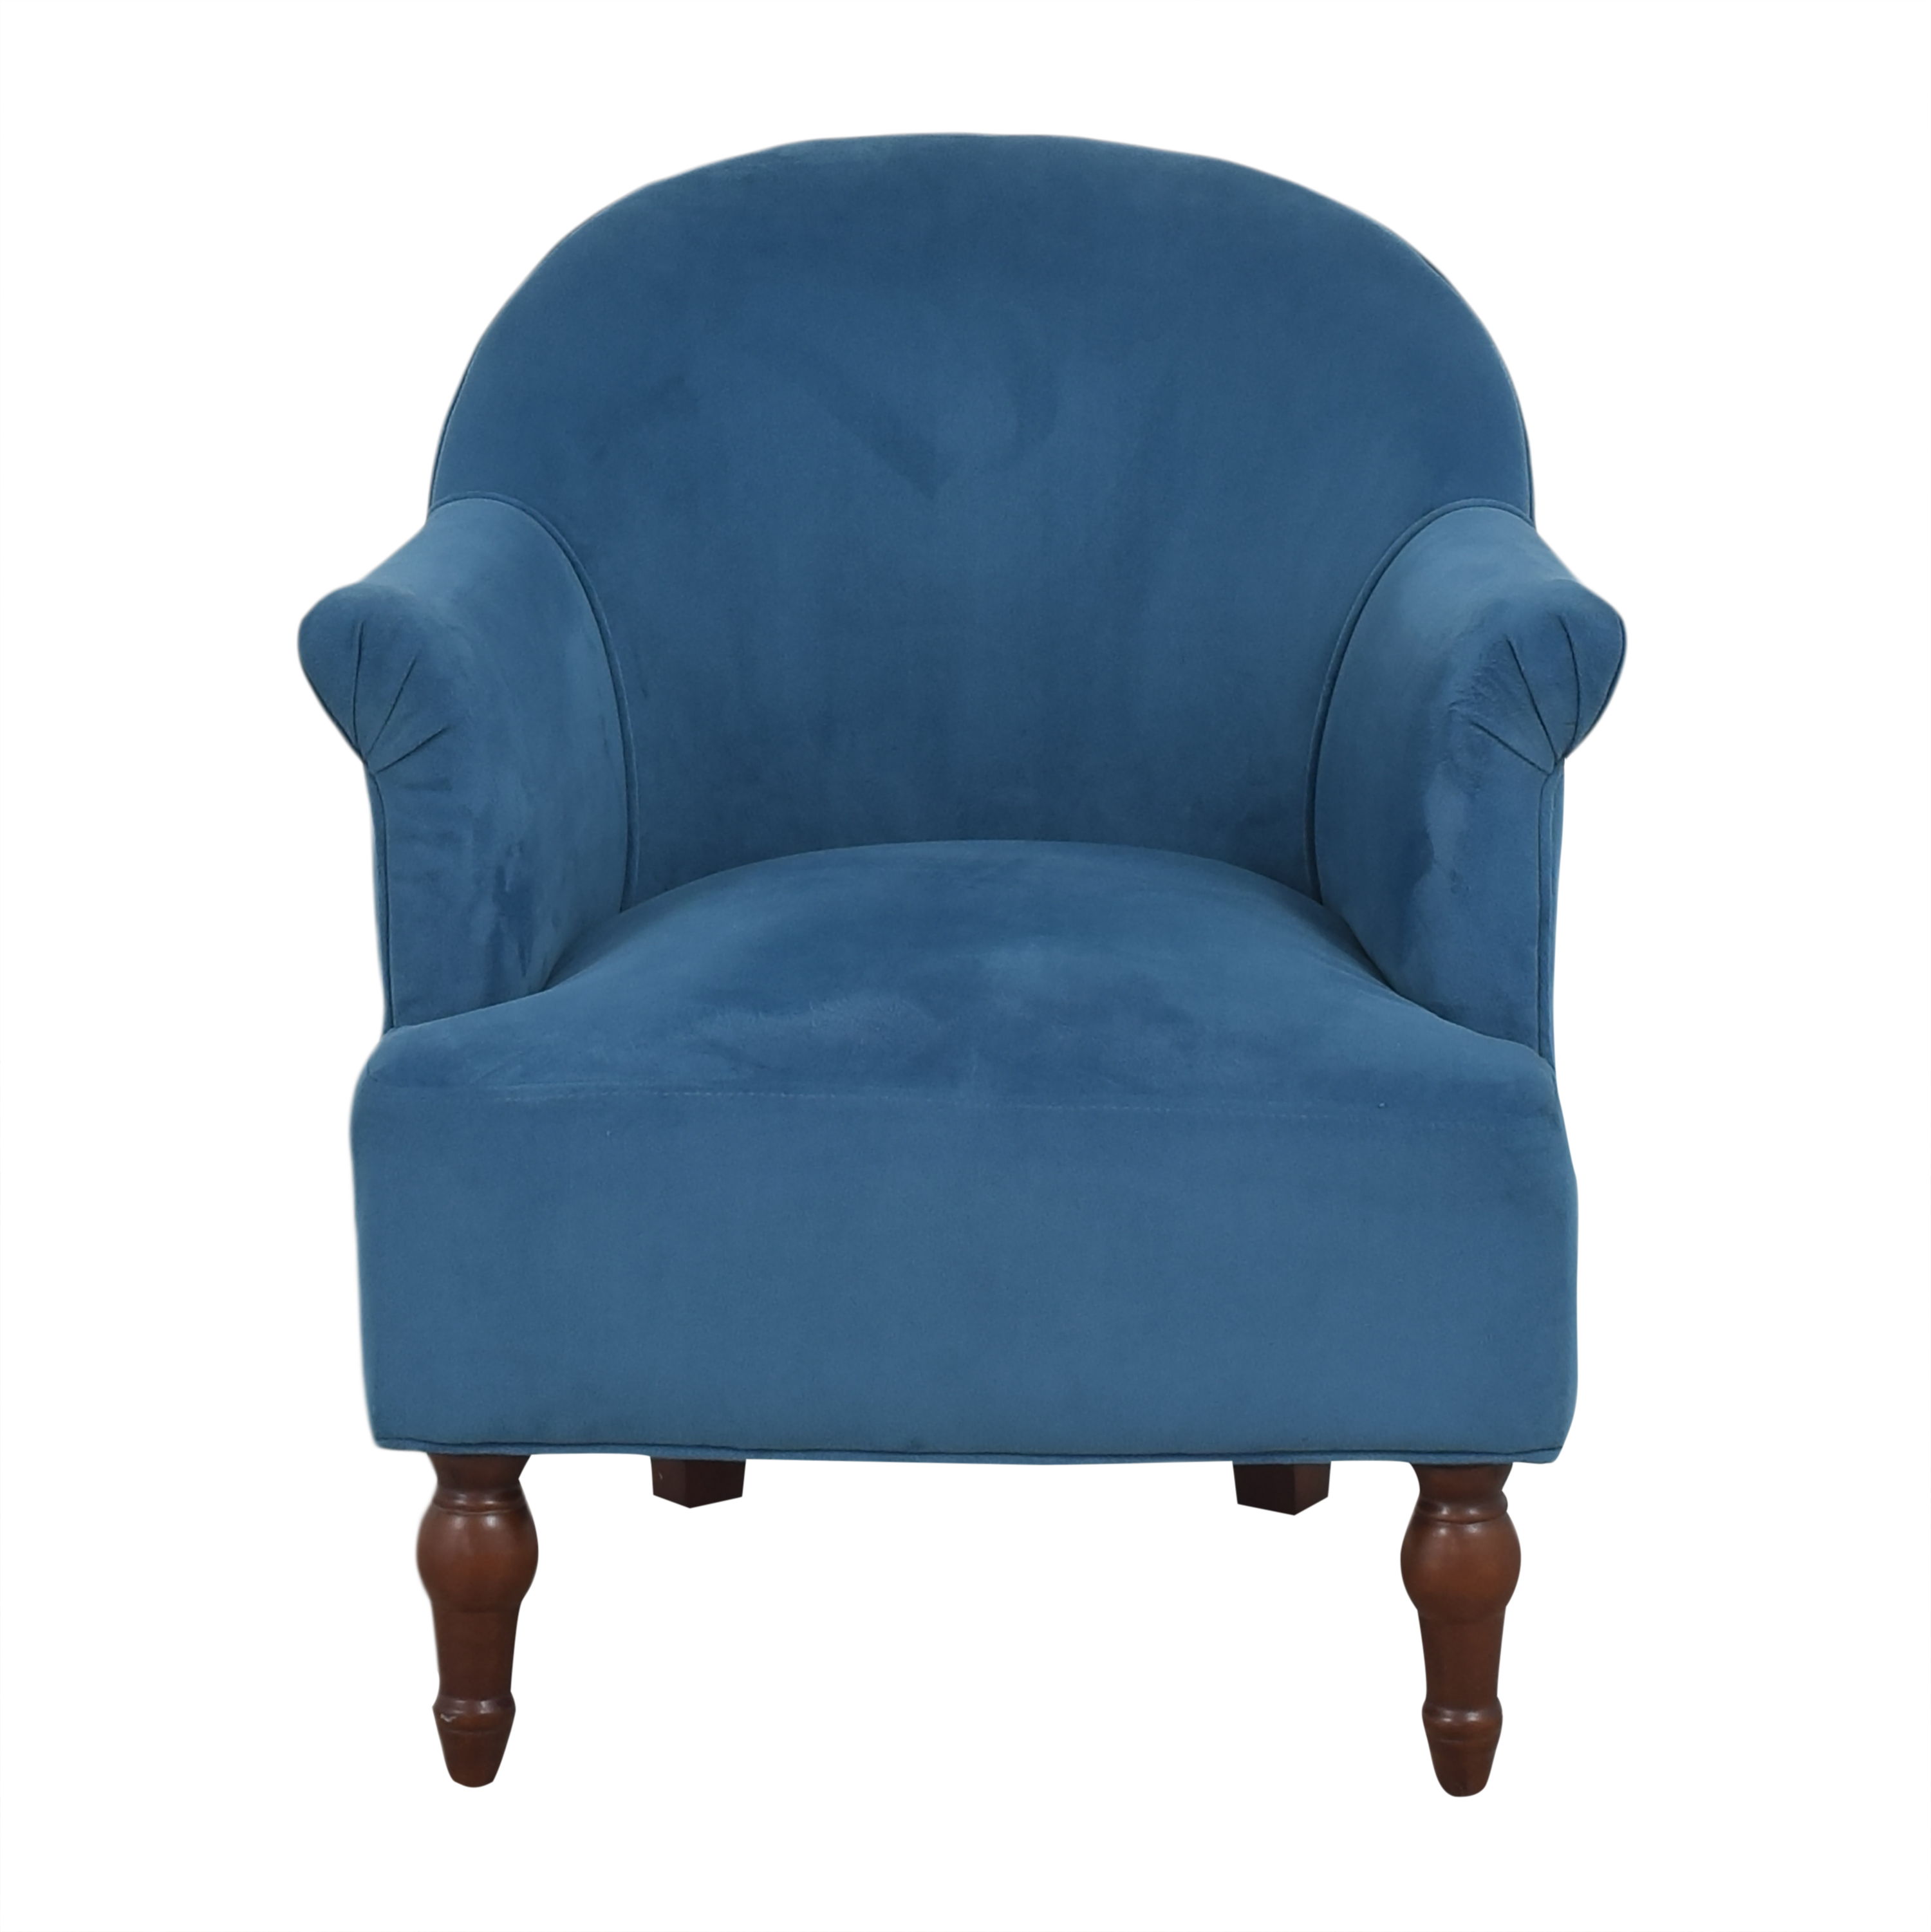 buy World Market Upholstered Accent Chair World Market Chairs